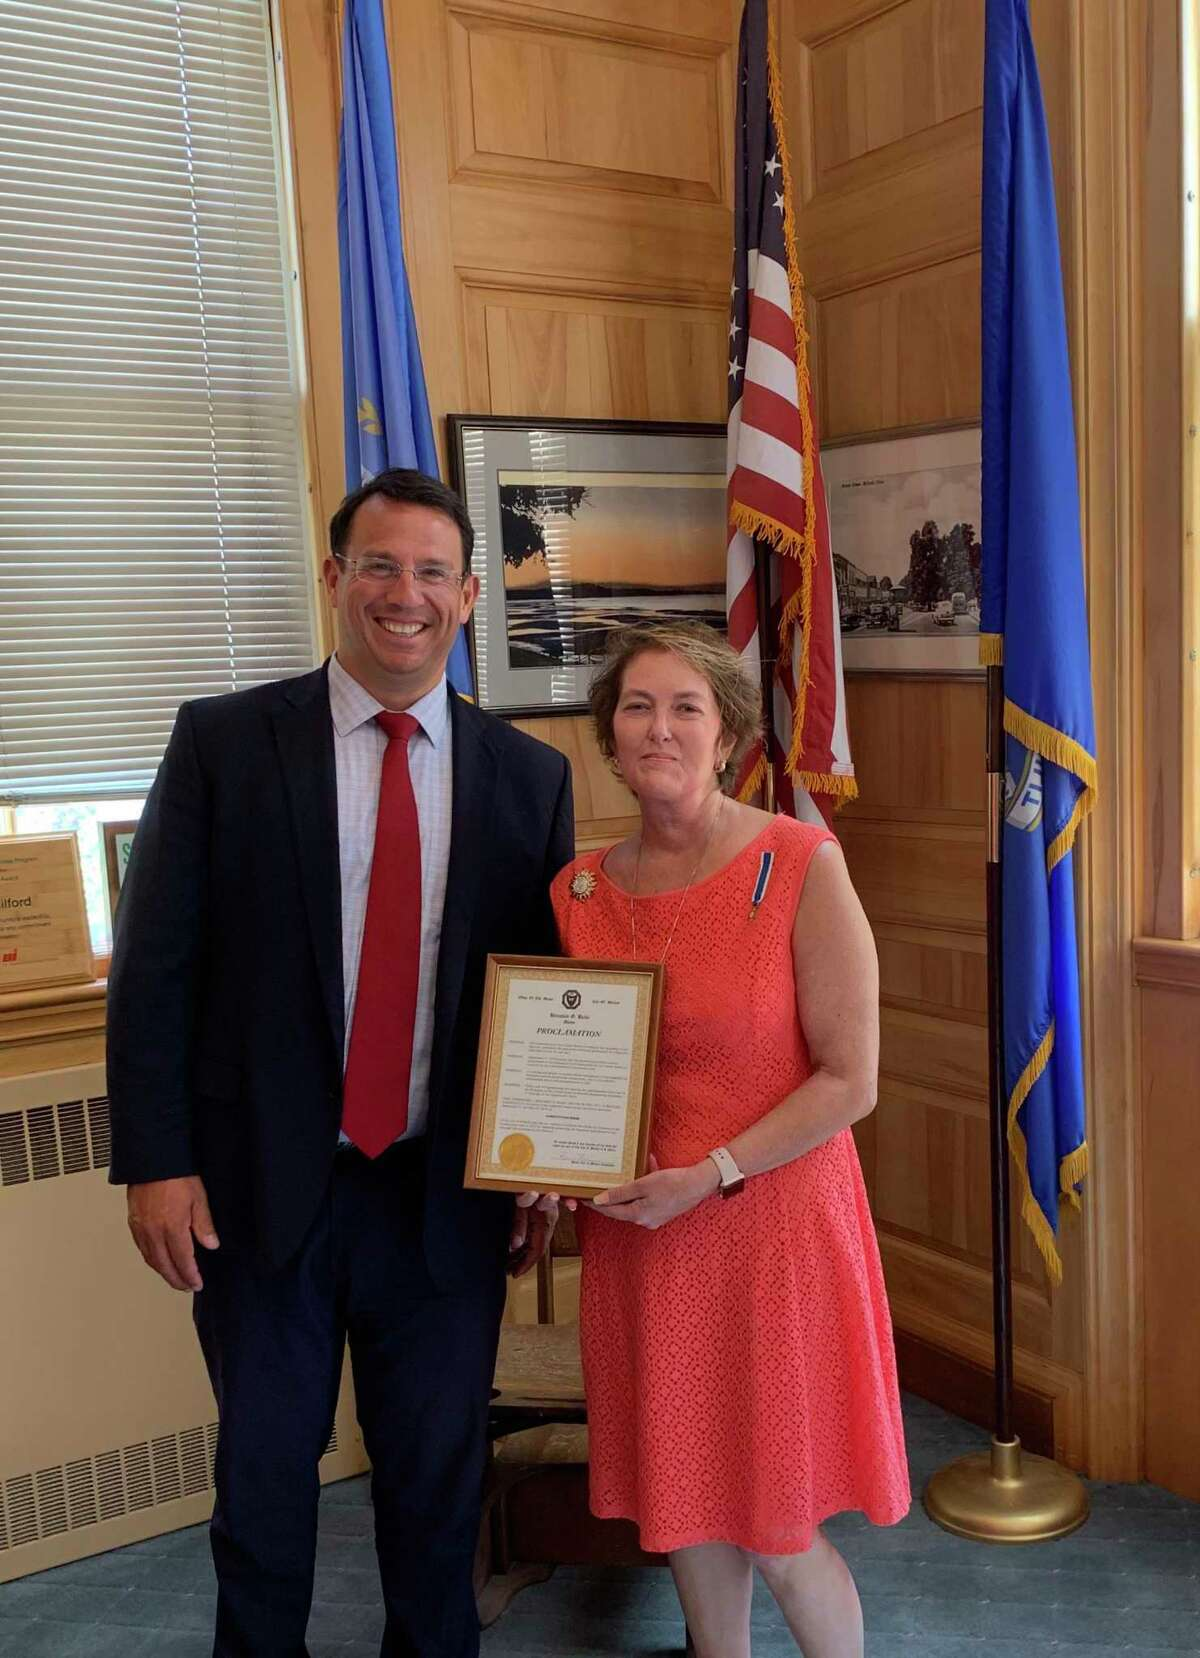 Mayor Ben Blake presented Regent Kendra Davis with a proclamation recently at Milford City Hall.